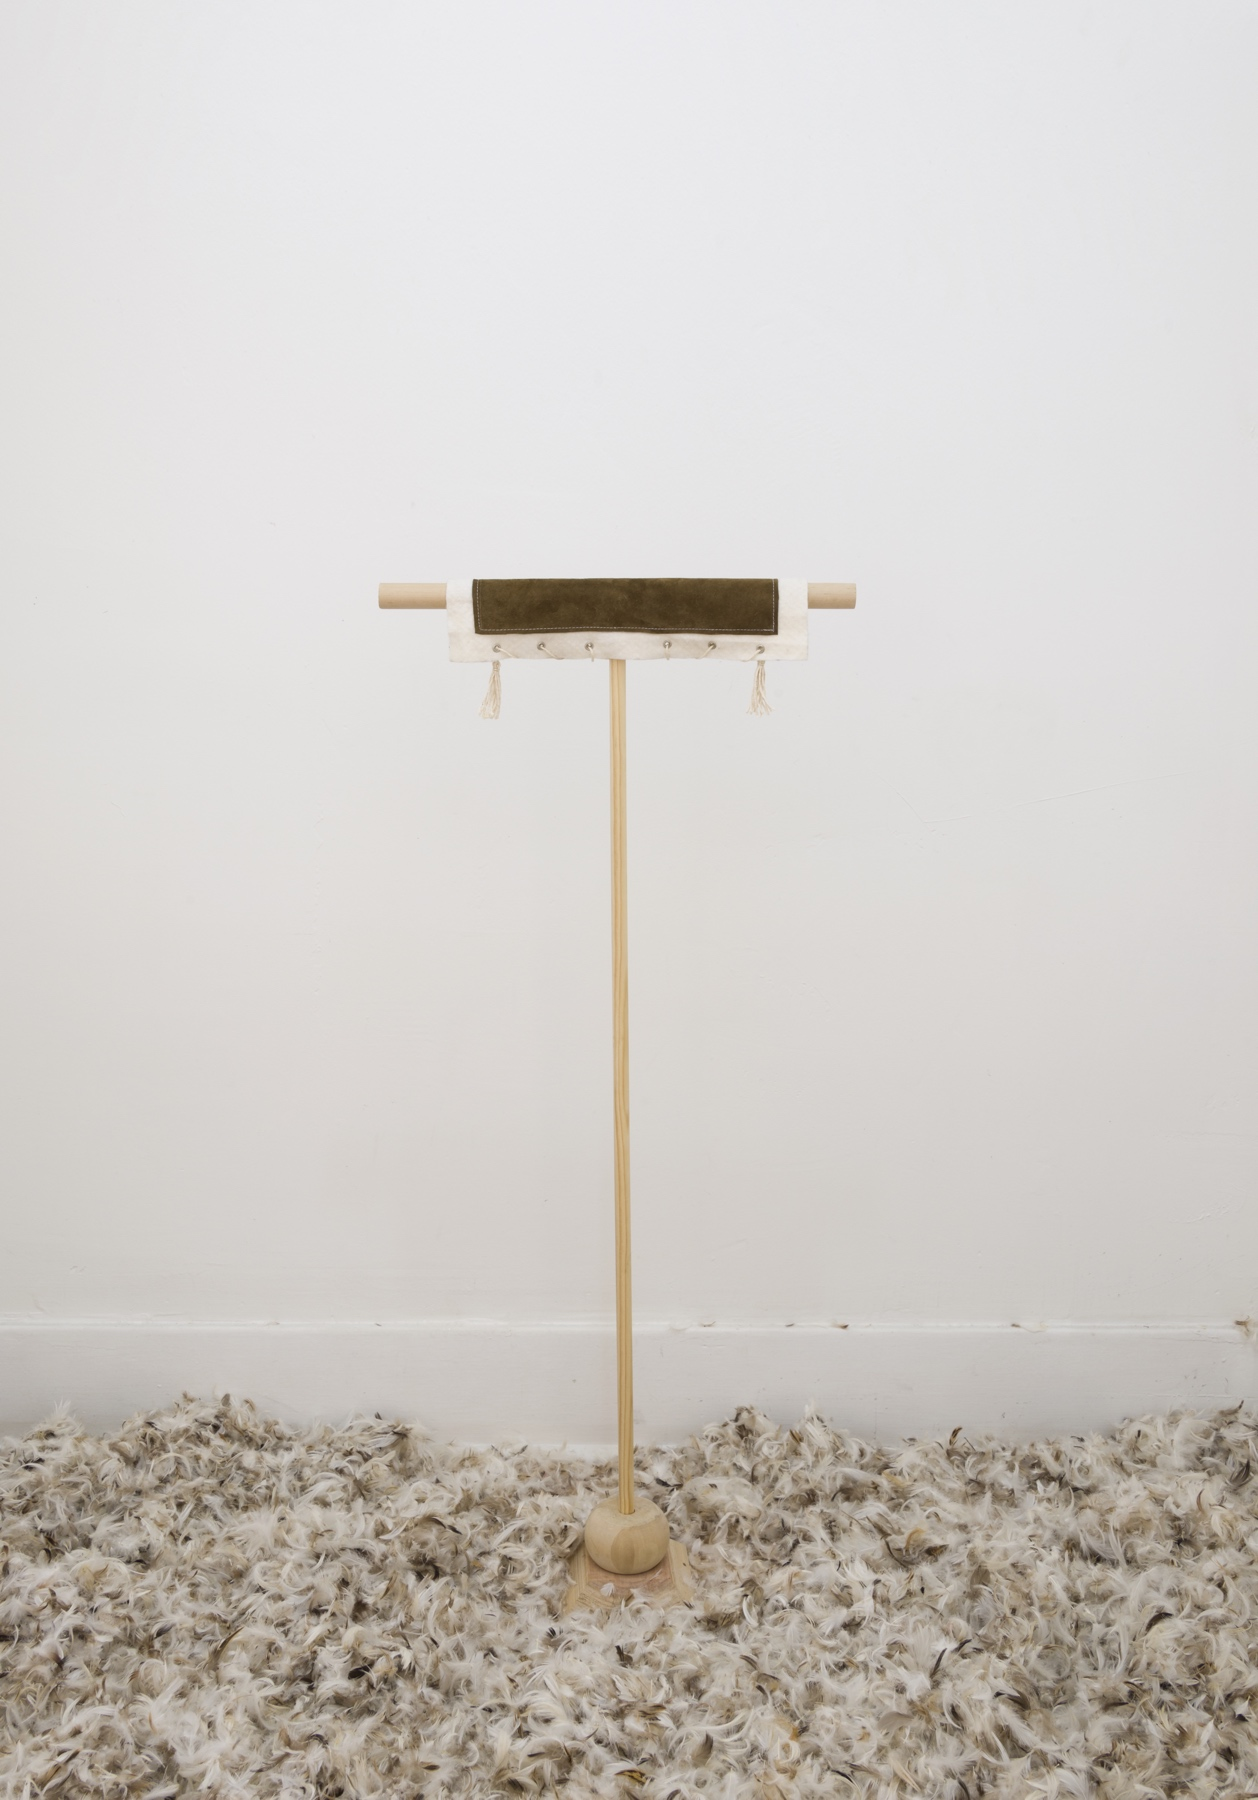 Aidan Koch,  Perch , 2017, wood, leather string, hardware, 5 ¾ × 17 ¾ × 41 ¼ inches (14.6 × 45.1 × 104.8 cm)